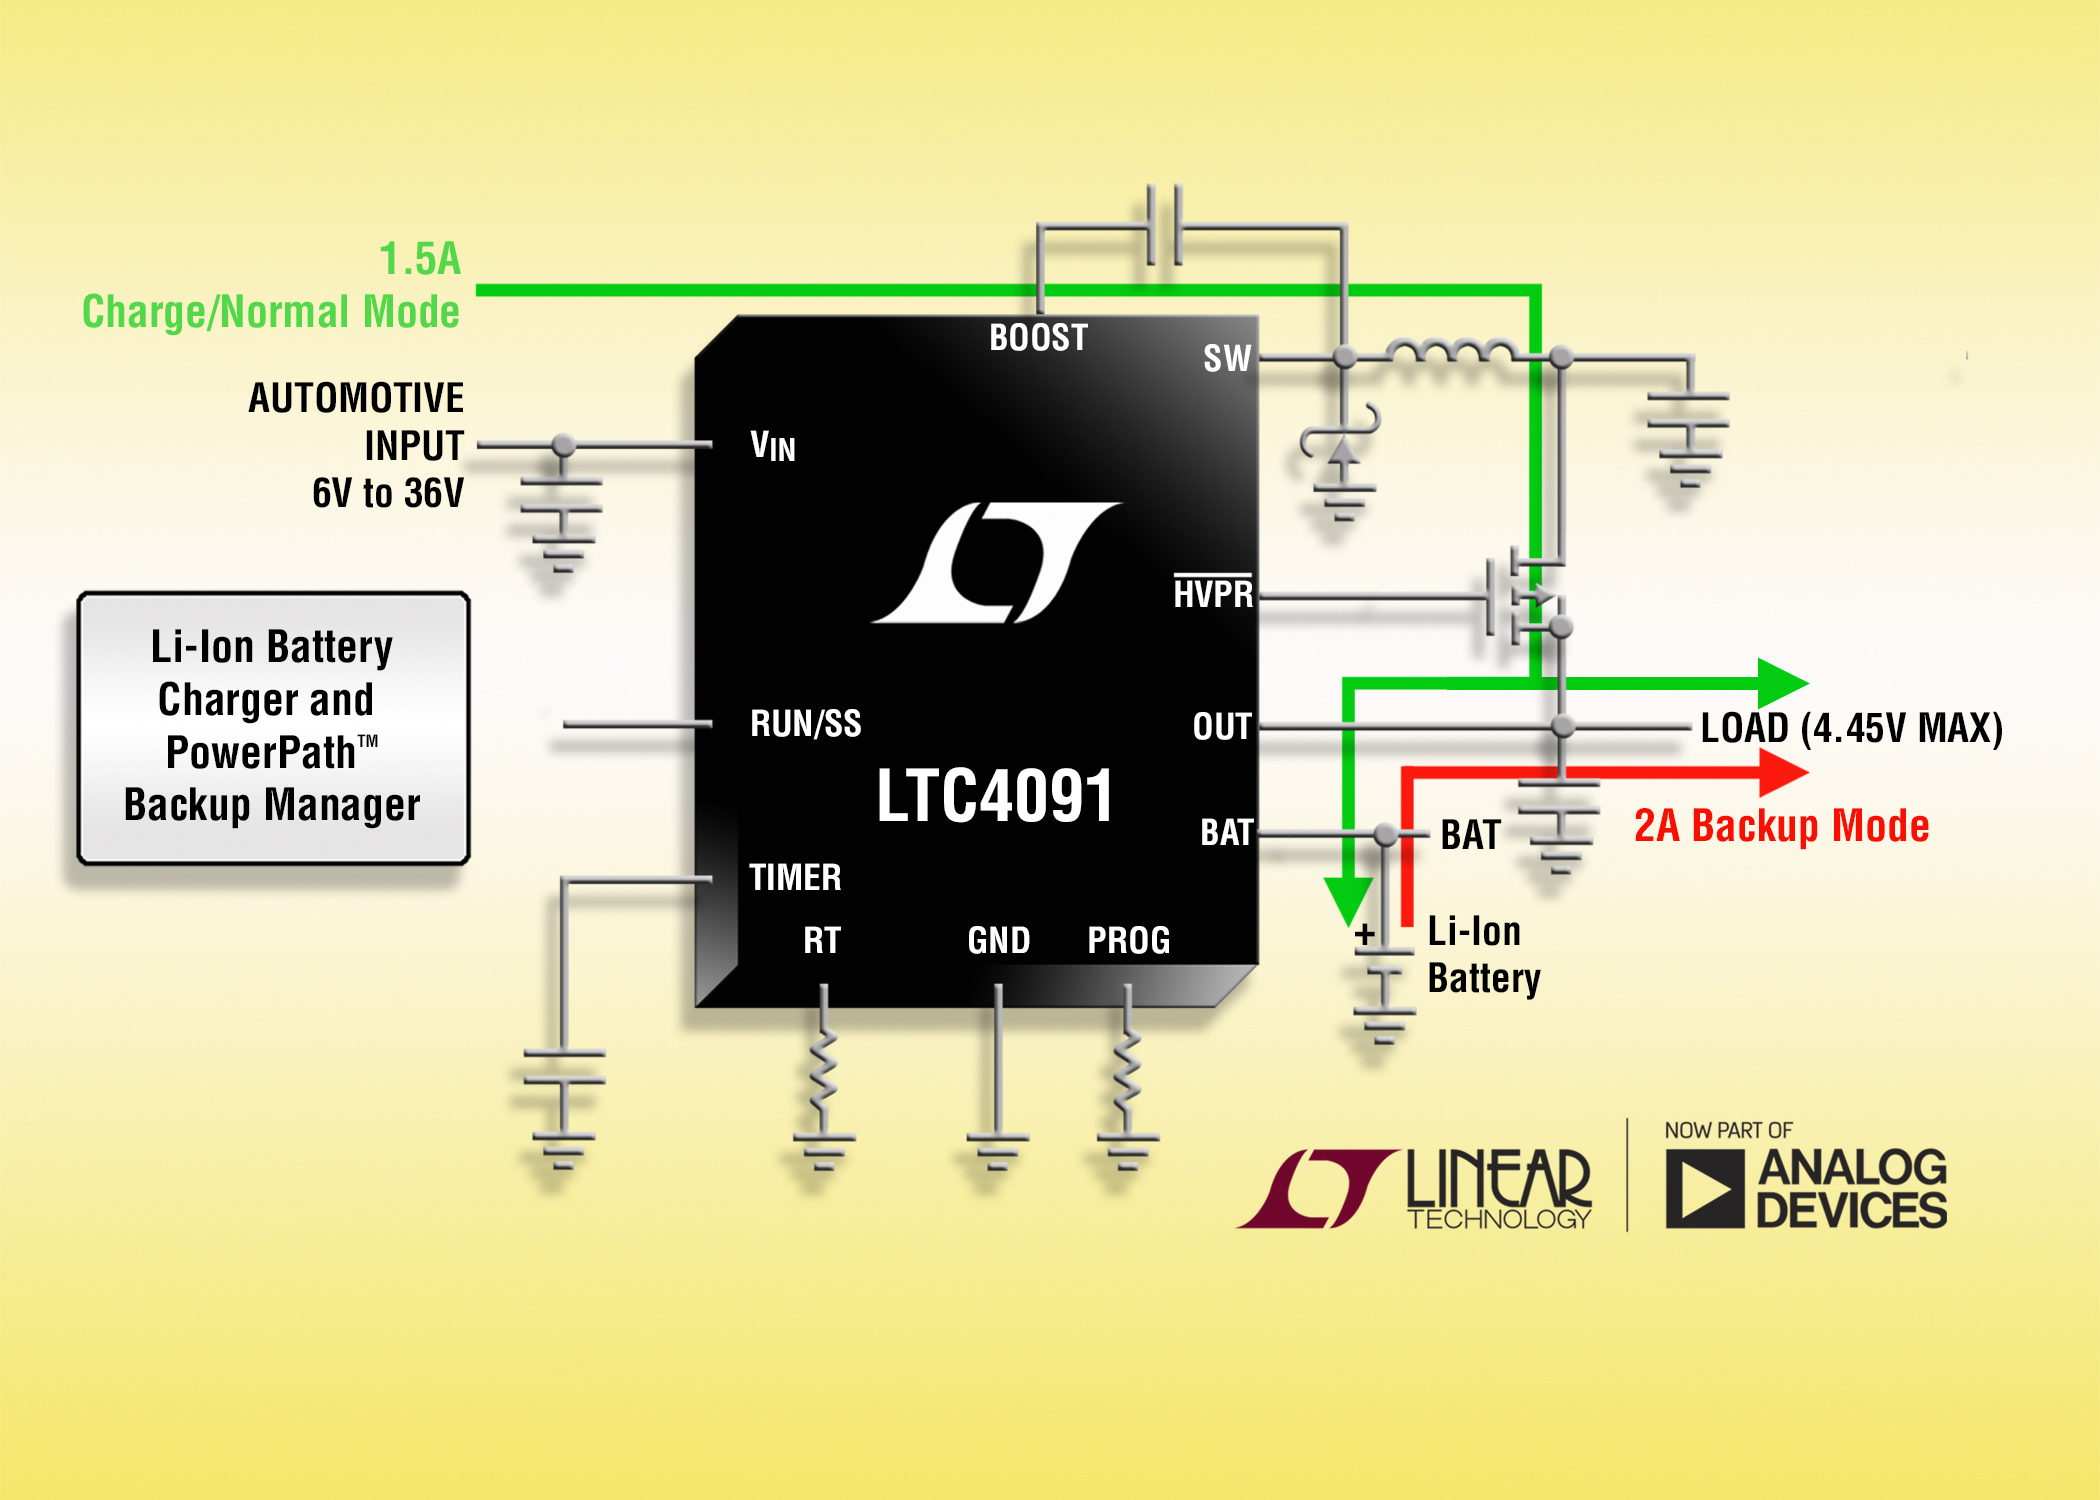 36V buck battery charger provides back-up power